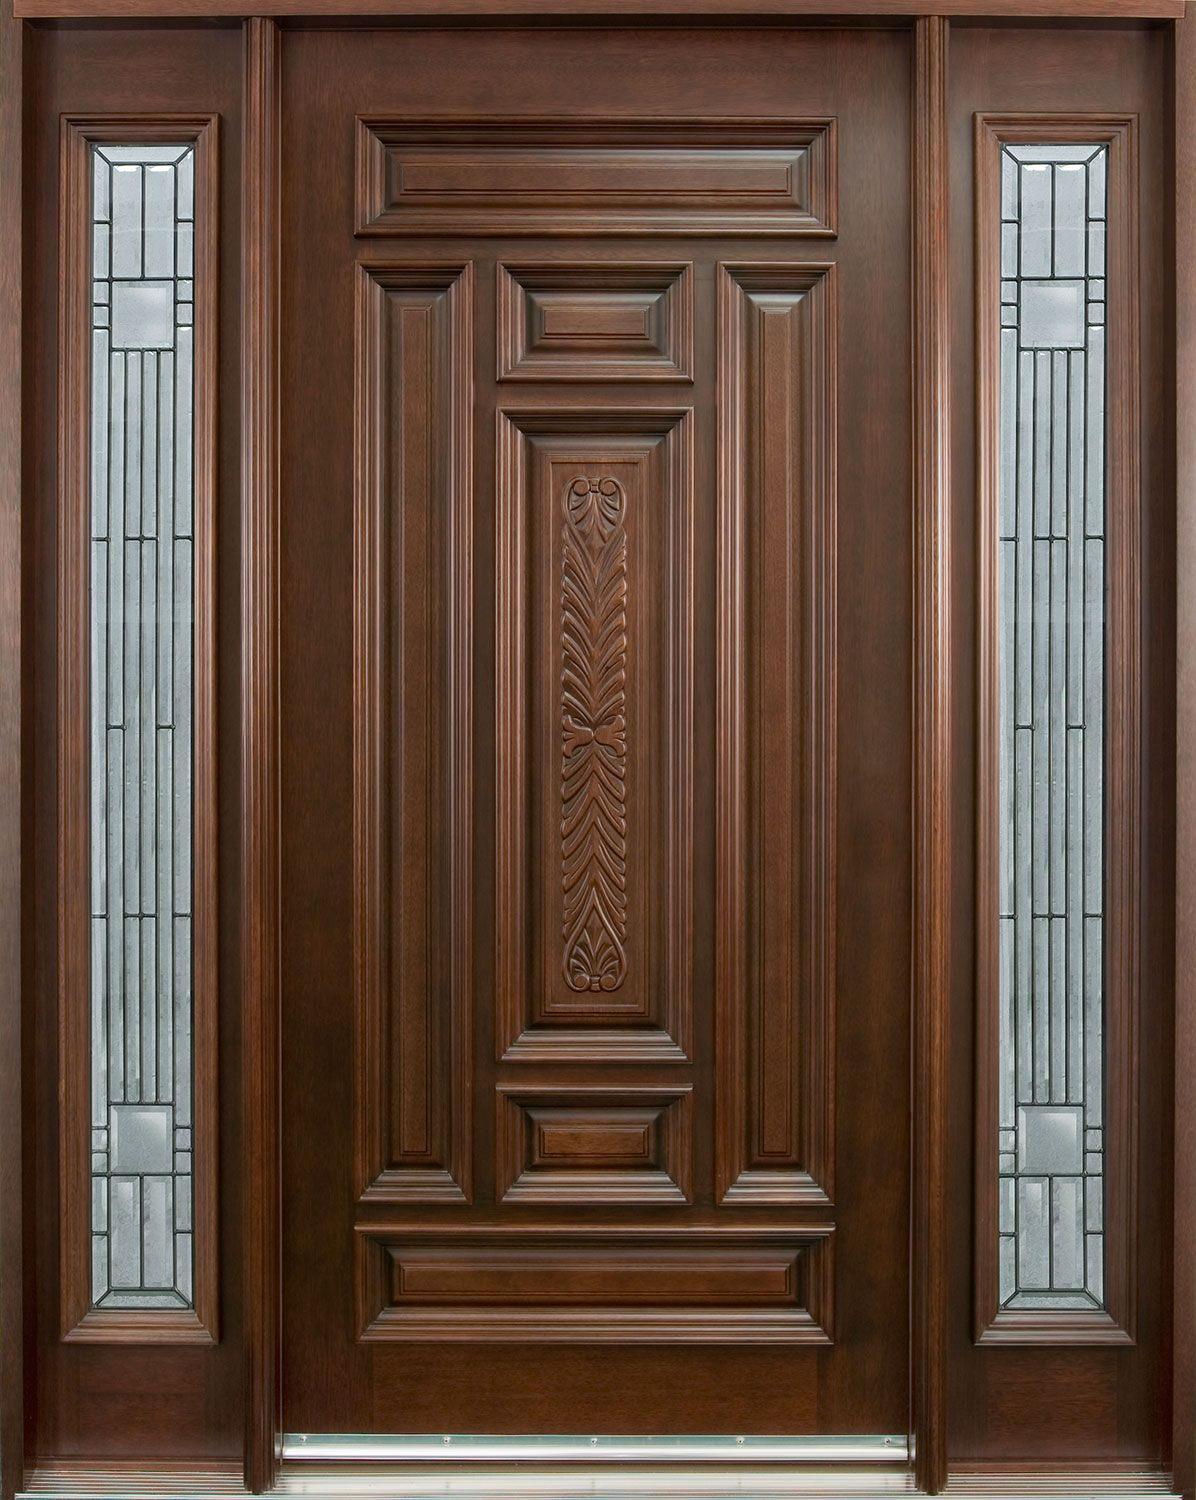 Antique Arts Crafts 1d 2sl Wood Home Exterior Door Gsp1 032 Wooden Front Door Design Wood Exterior Door Wood Front Entry Doors